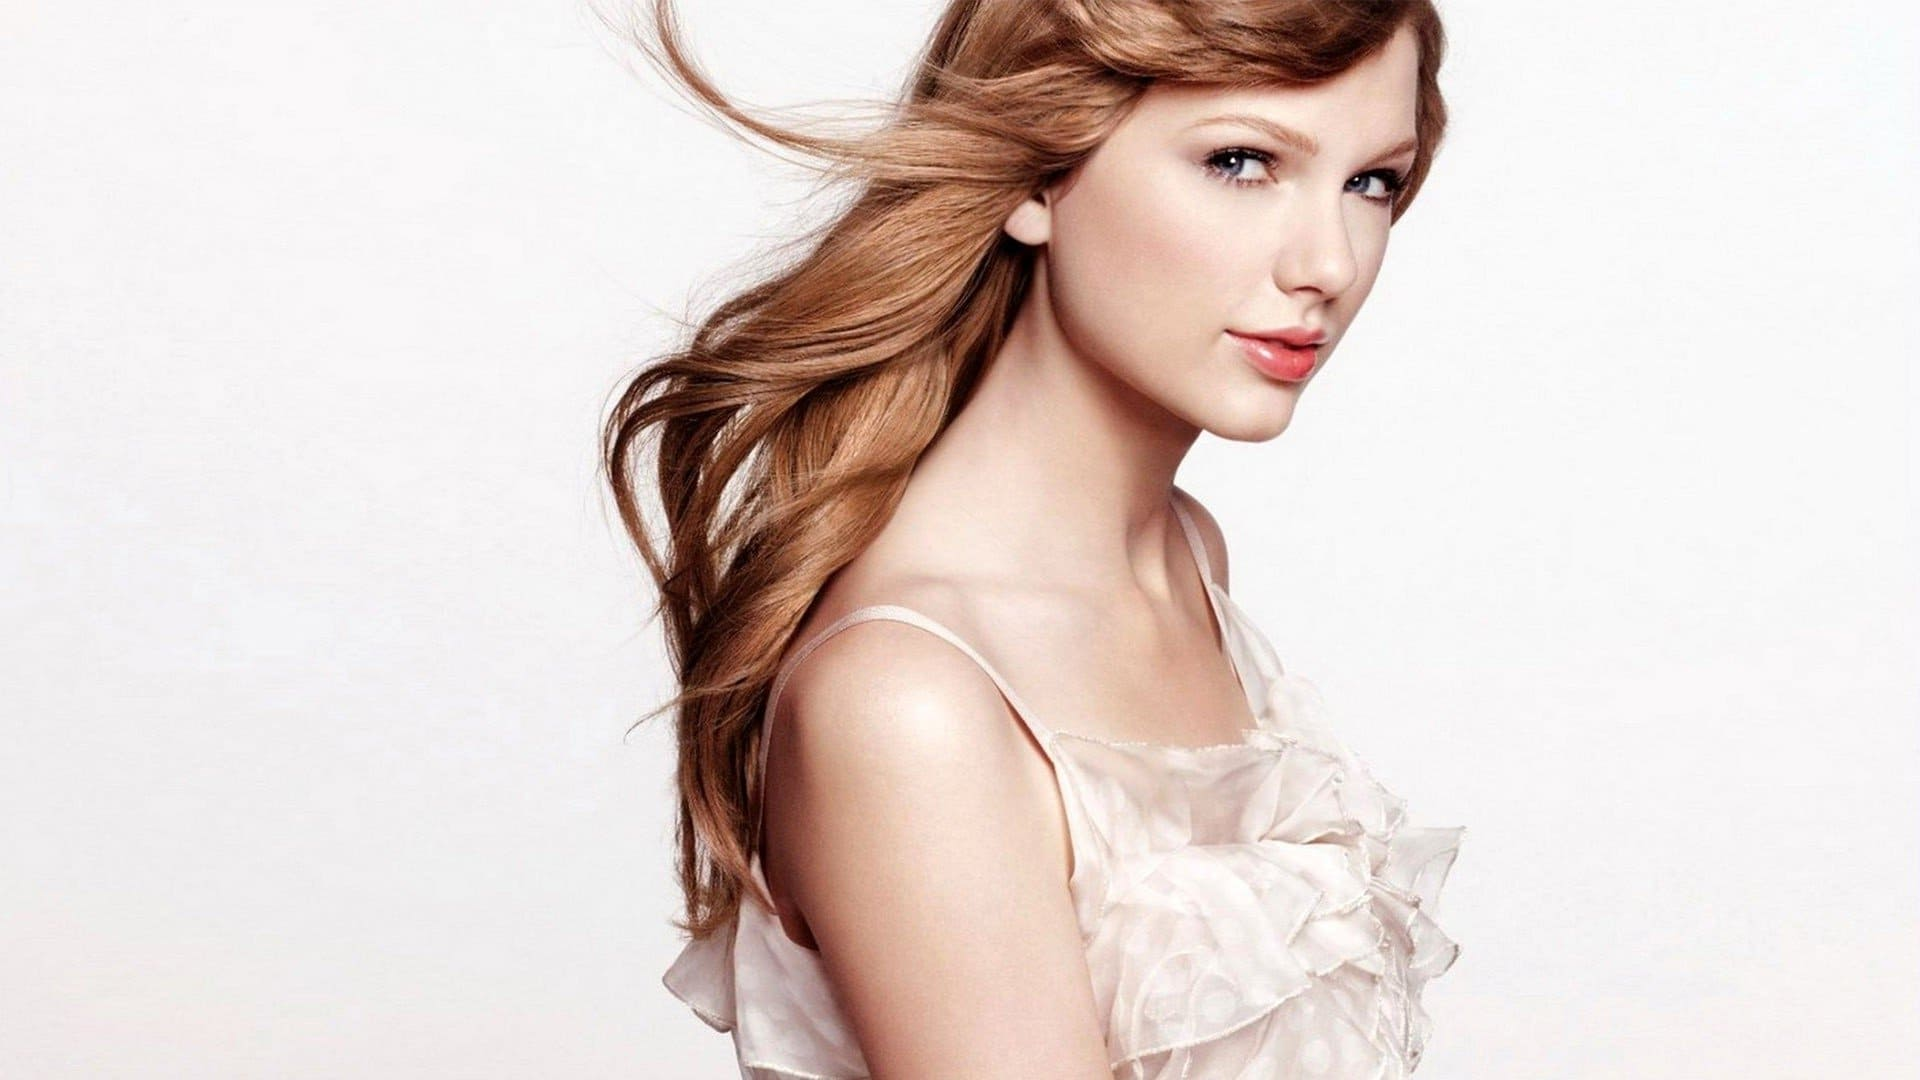 taylor swift pc background